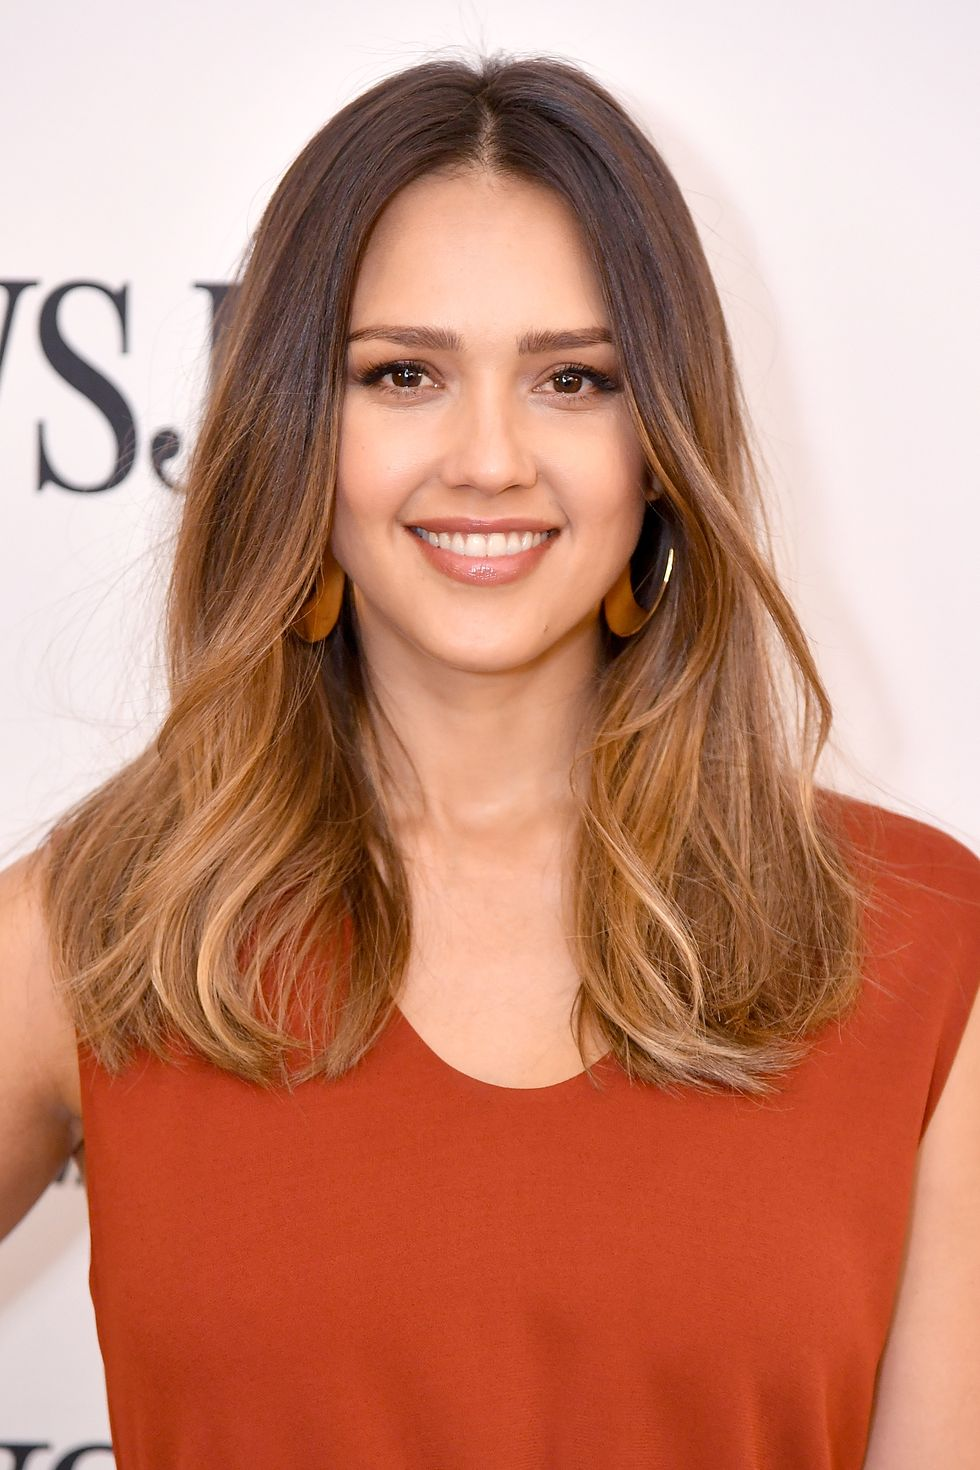 actress-and-businesswoman-jessica-alba-attends-wsjs-the-news-photo-1583849417